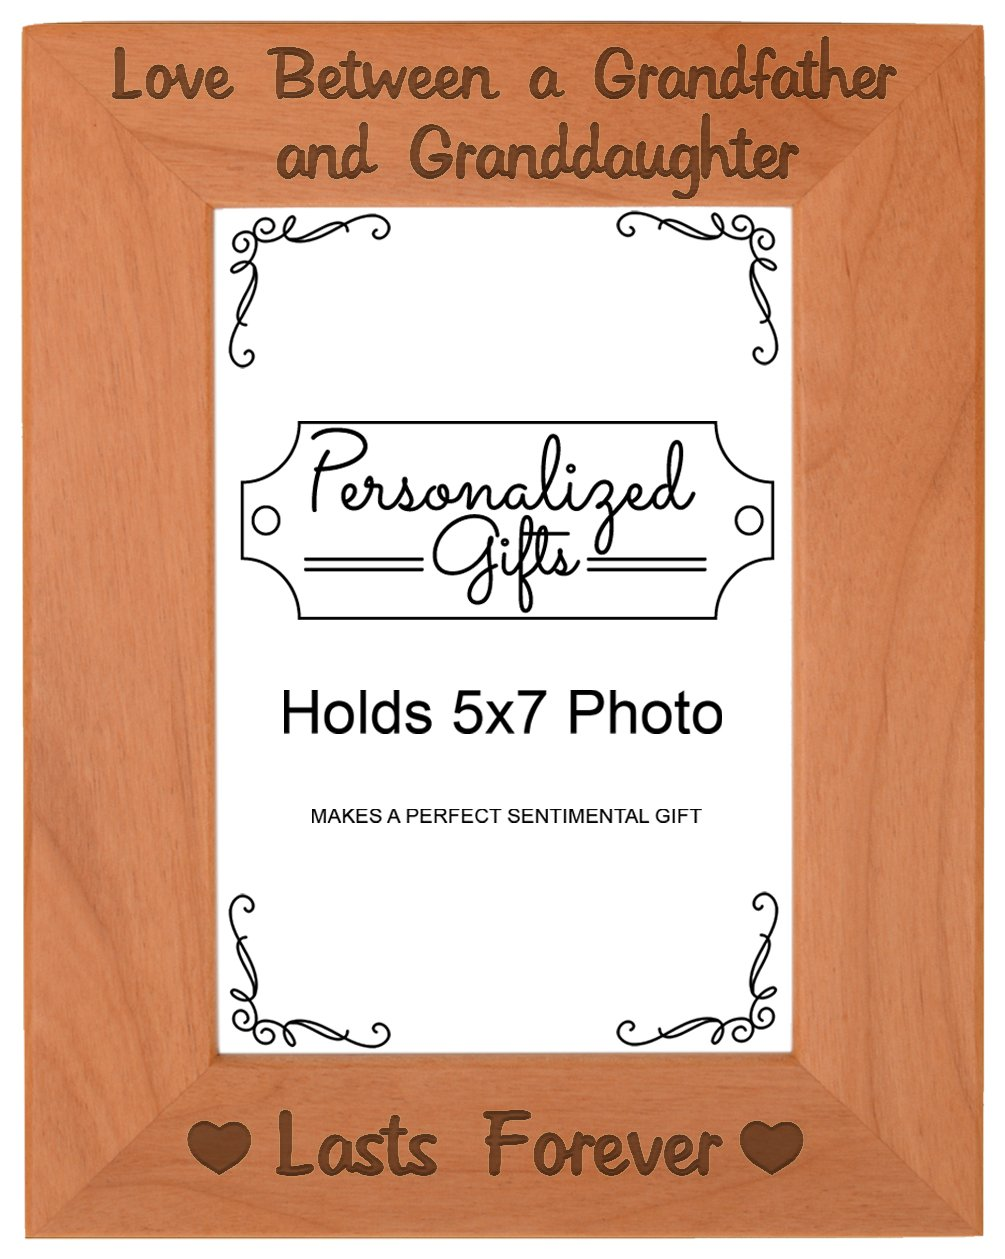 First Time Grandpa Gifts Love Between A Grandfather And Granddaughter Lasts Forever Birthday Natural Wood Engraved 5x7 Portrait Picture Frame